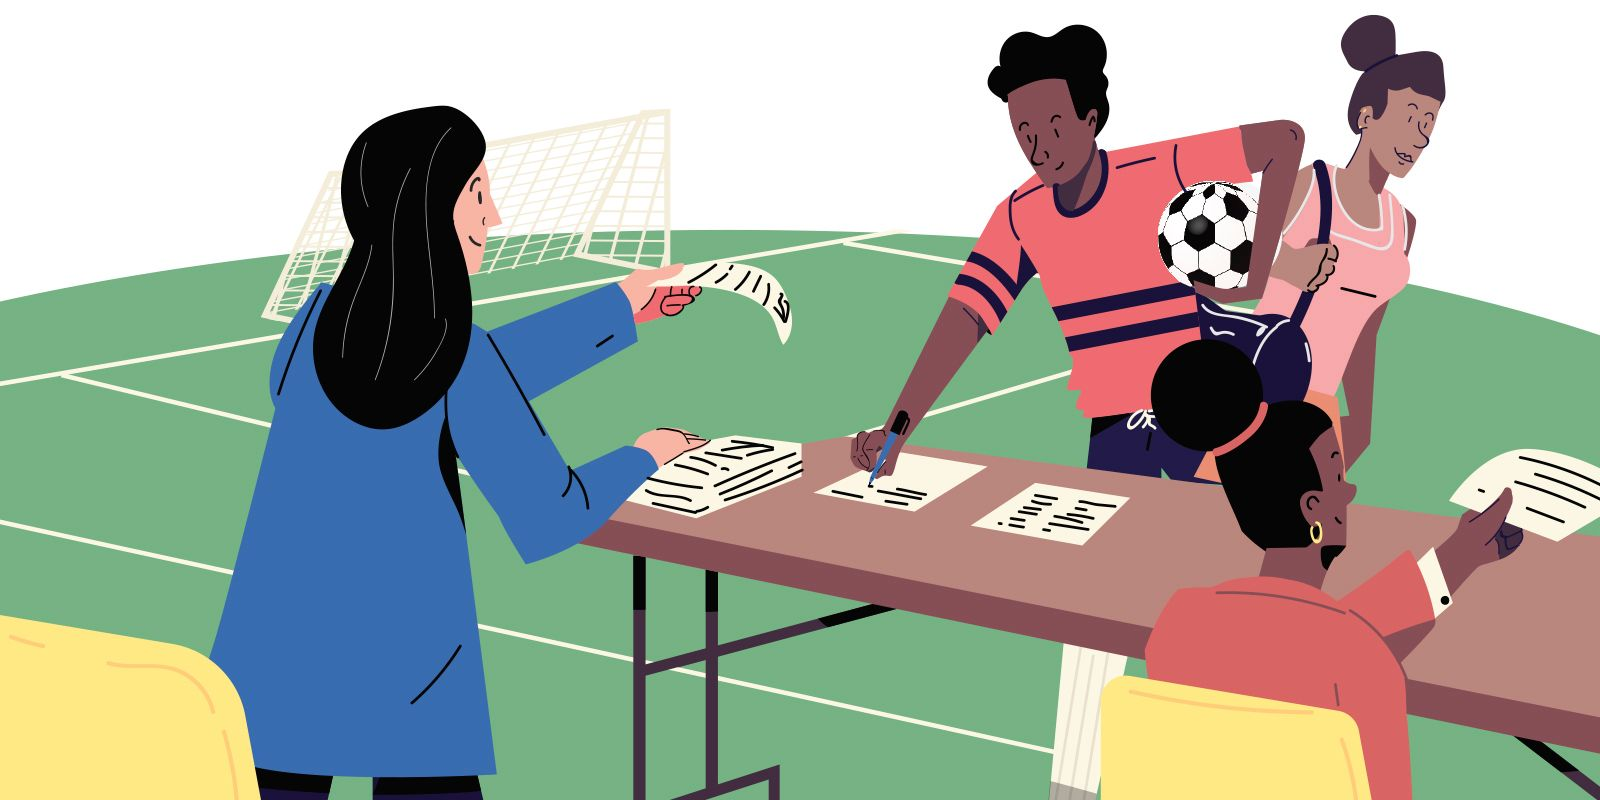 A drawing depicting a citizen signing up for a soccer tournament.